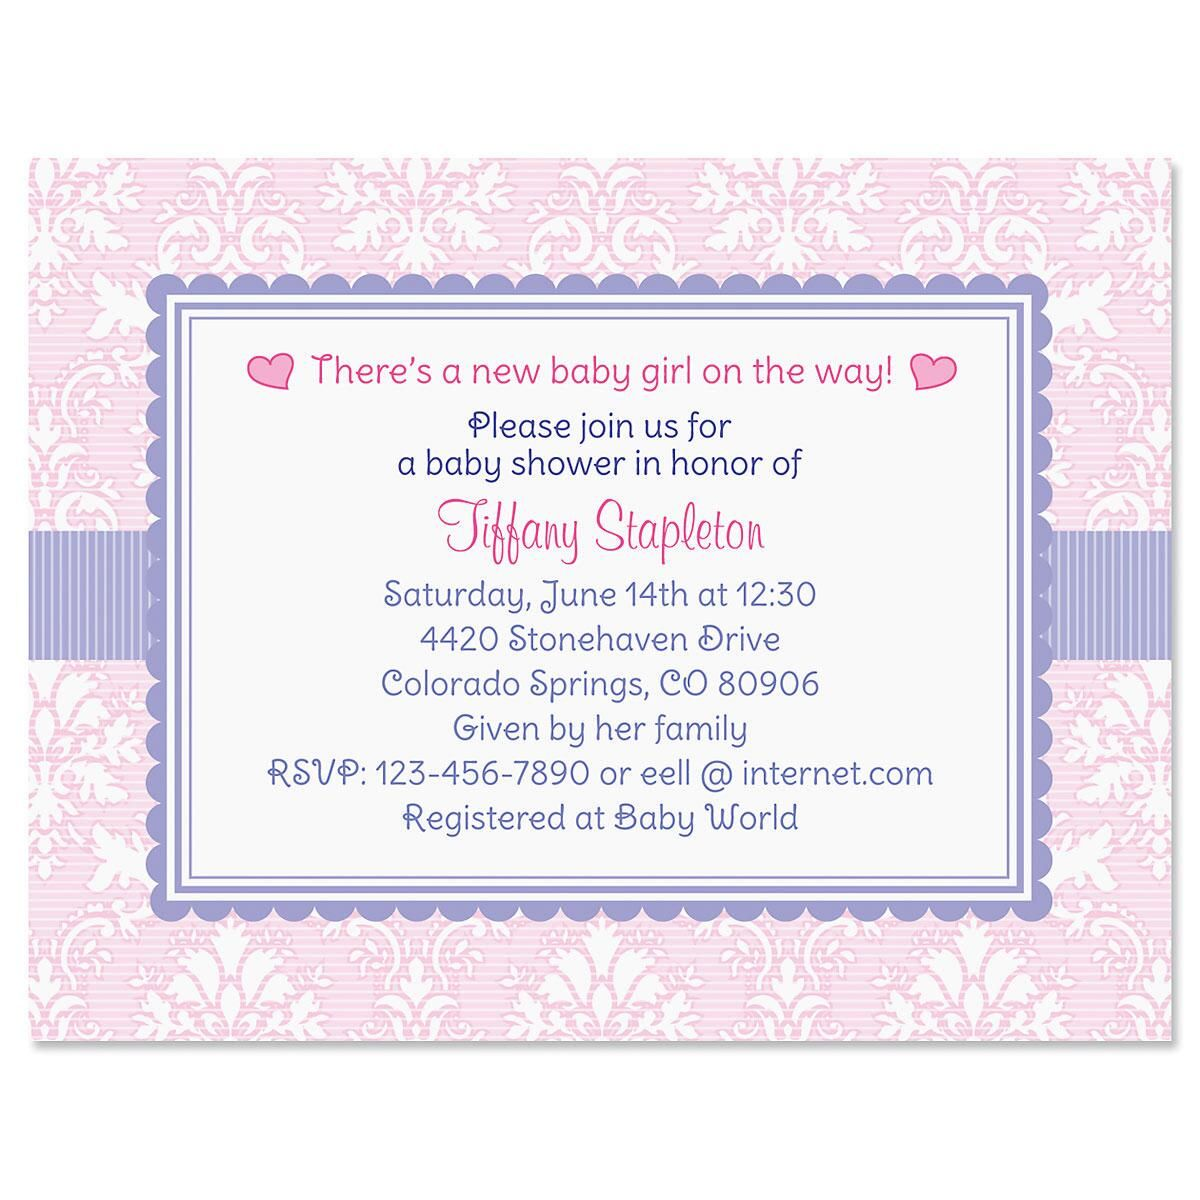 Painted Blooms Personalized Invitation